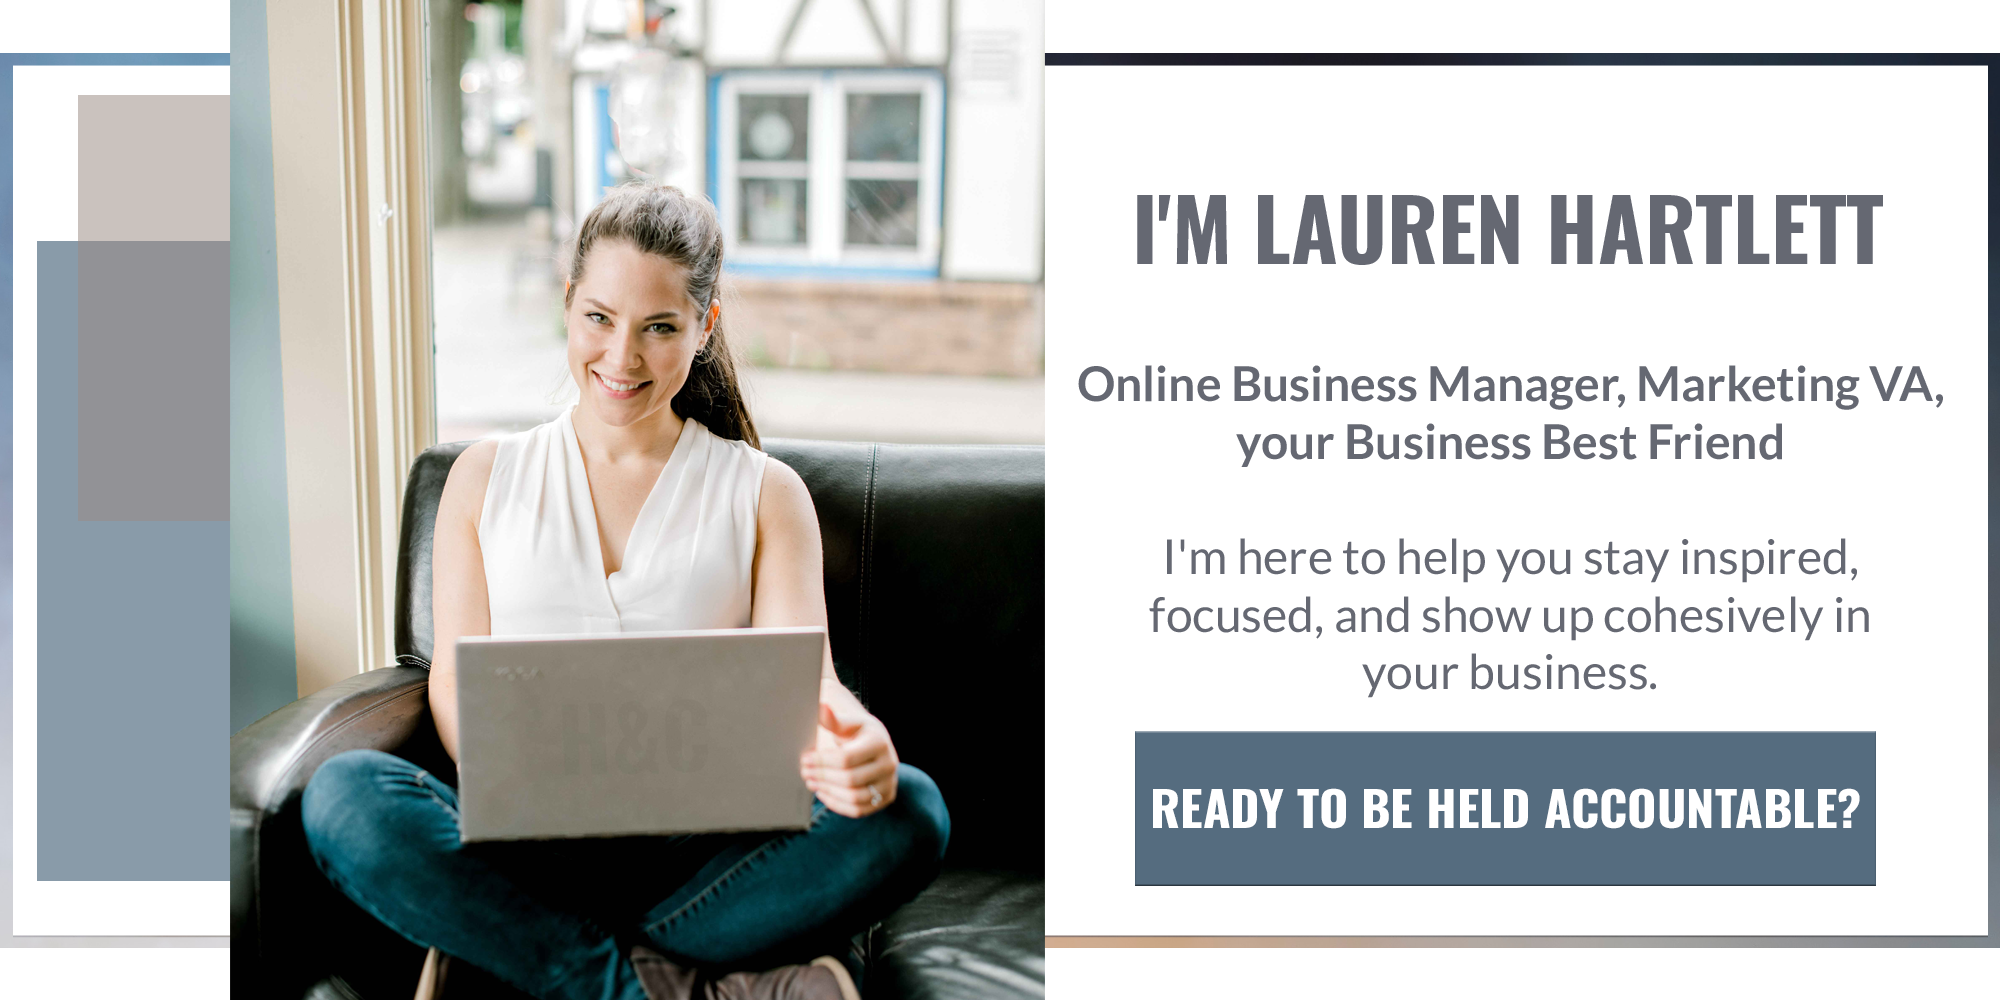 Online Business Manager, Brand Consultant strategy, and Business Best Friend helping you find your holistic legacy